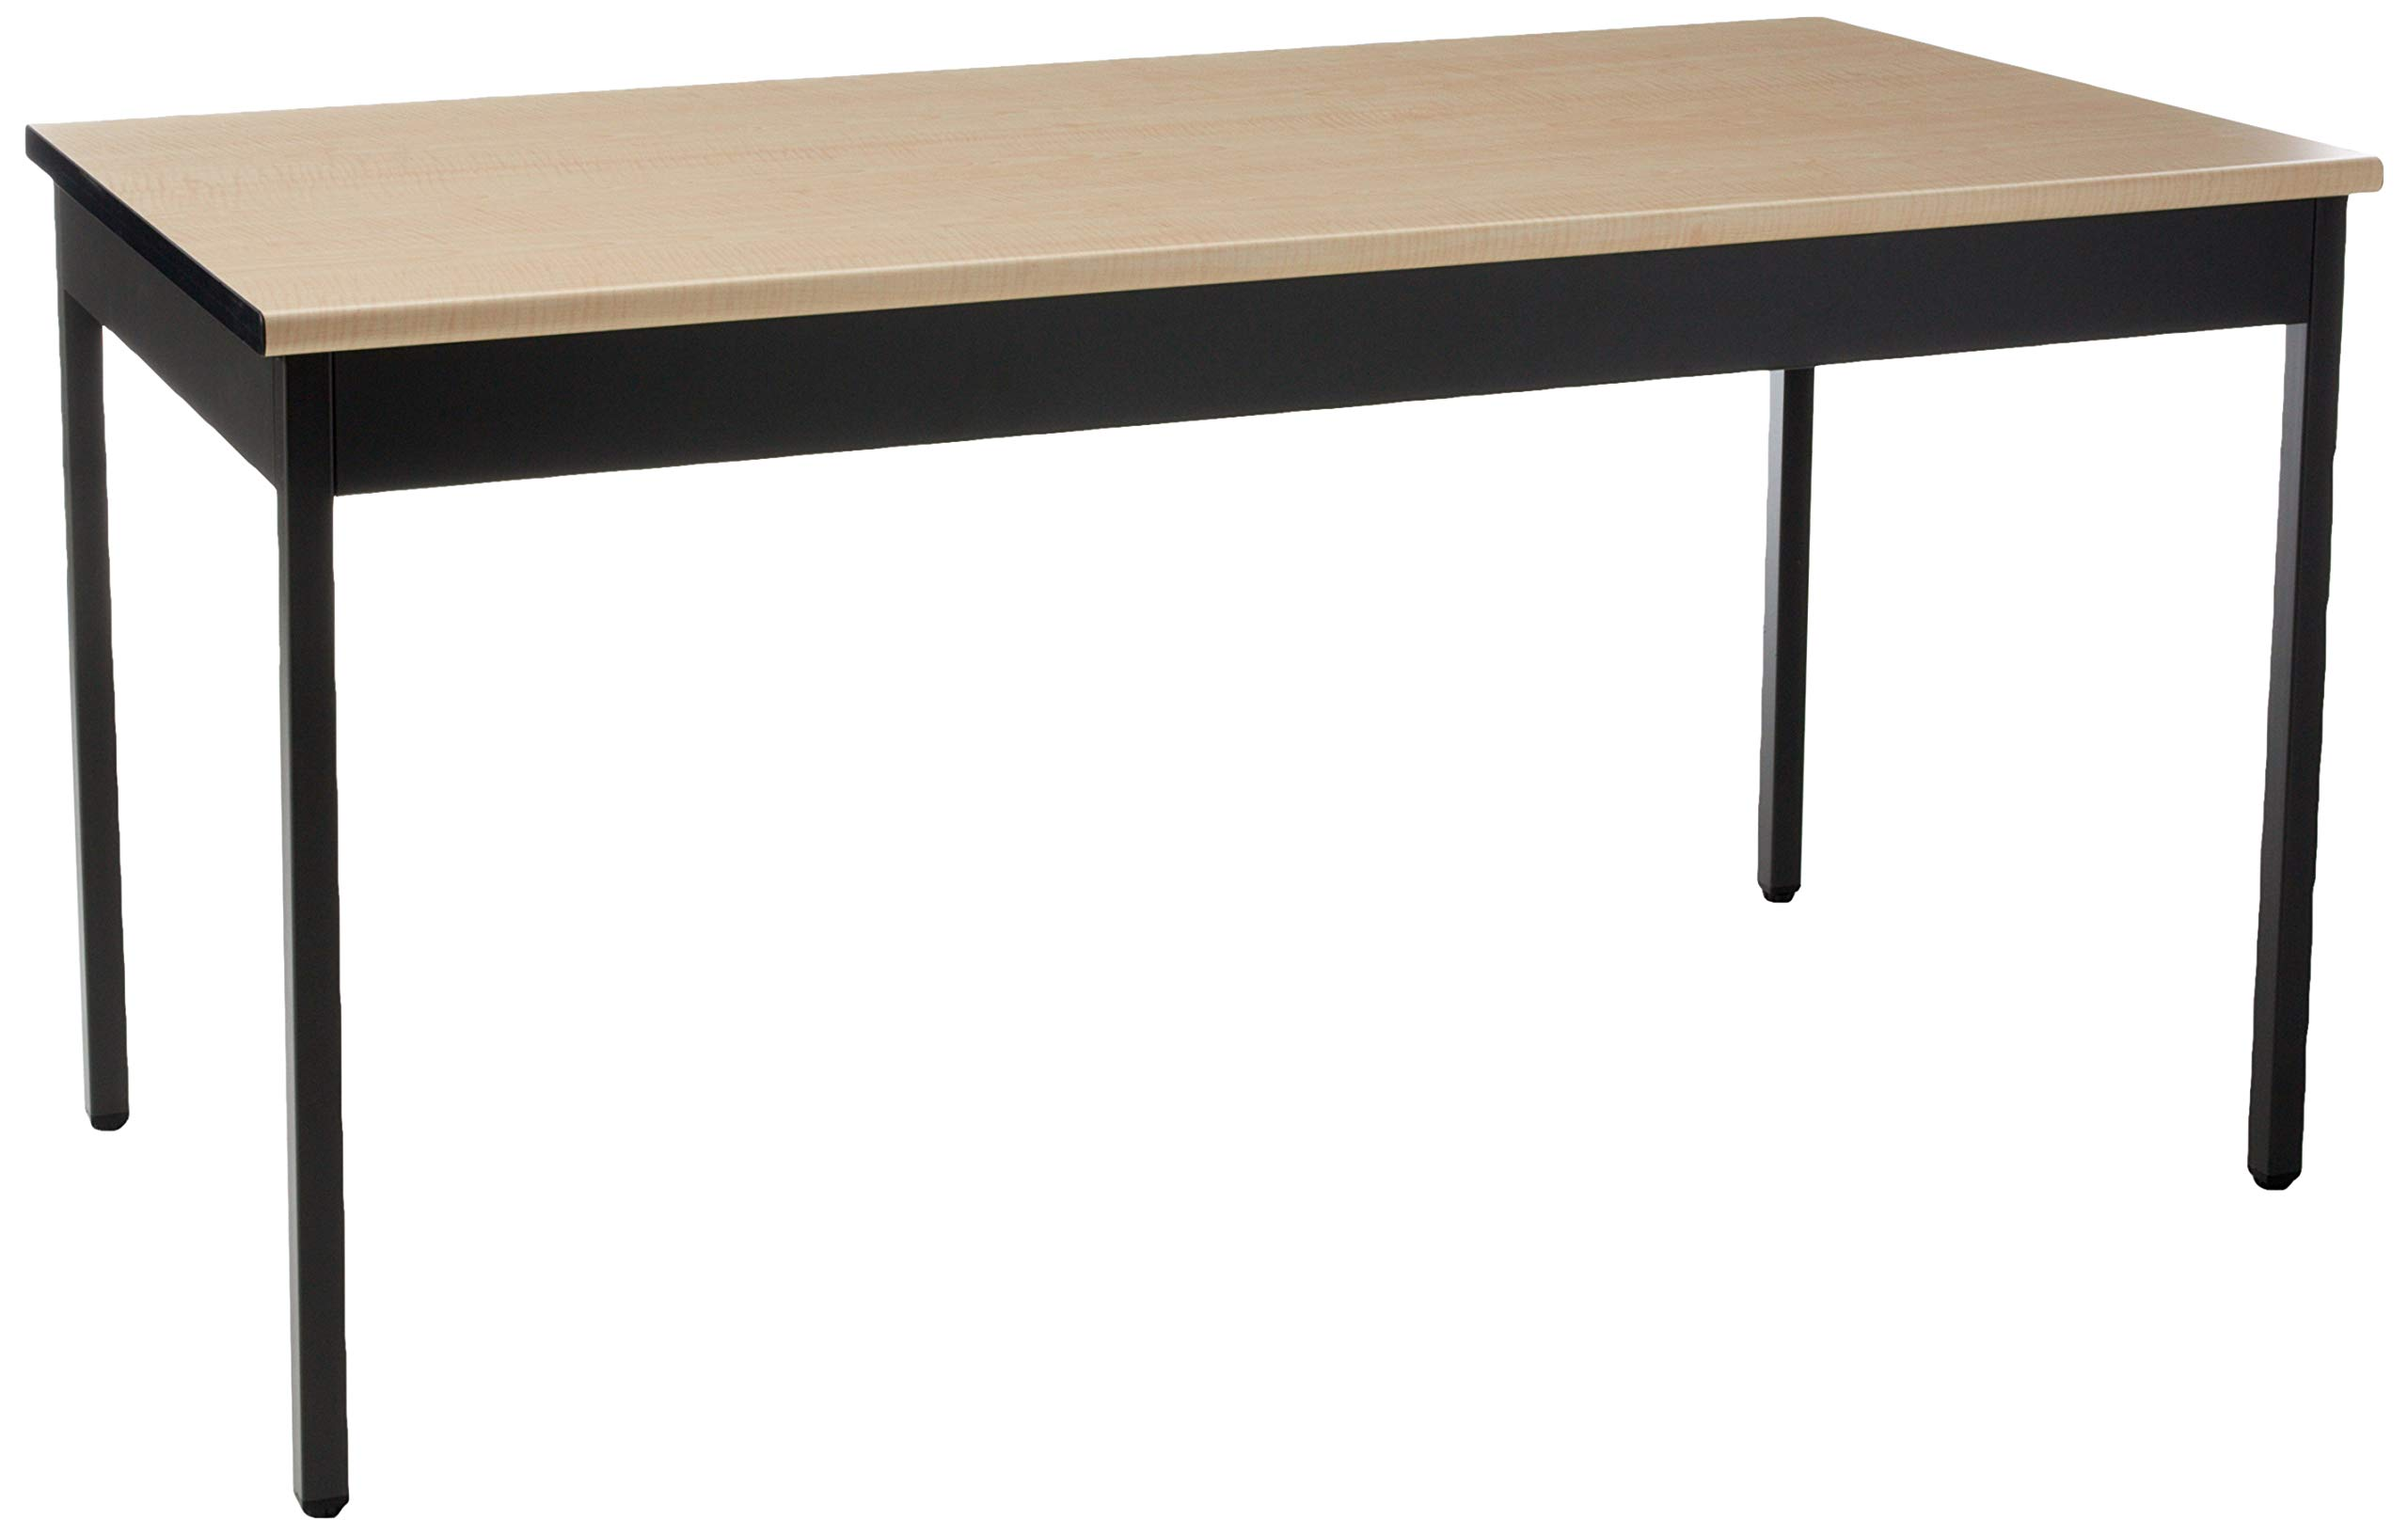 OFM UT3060-MPL Utility Table, 30 by 60-Inch, Maple